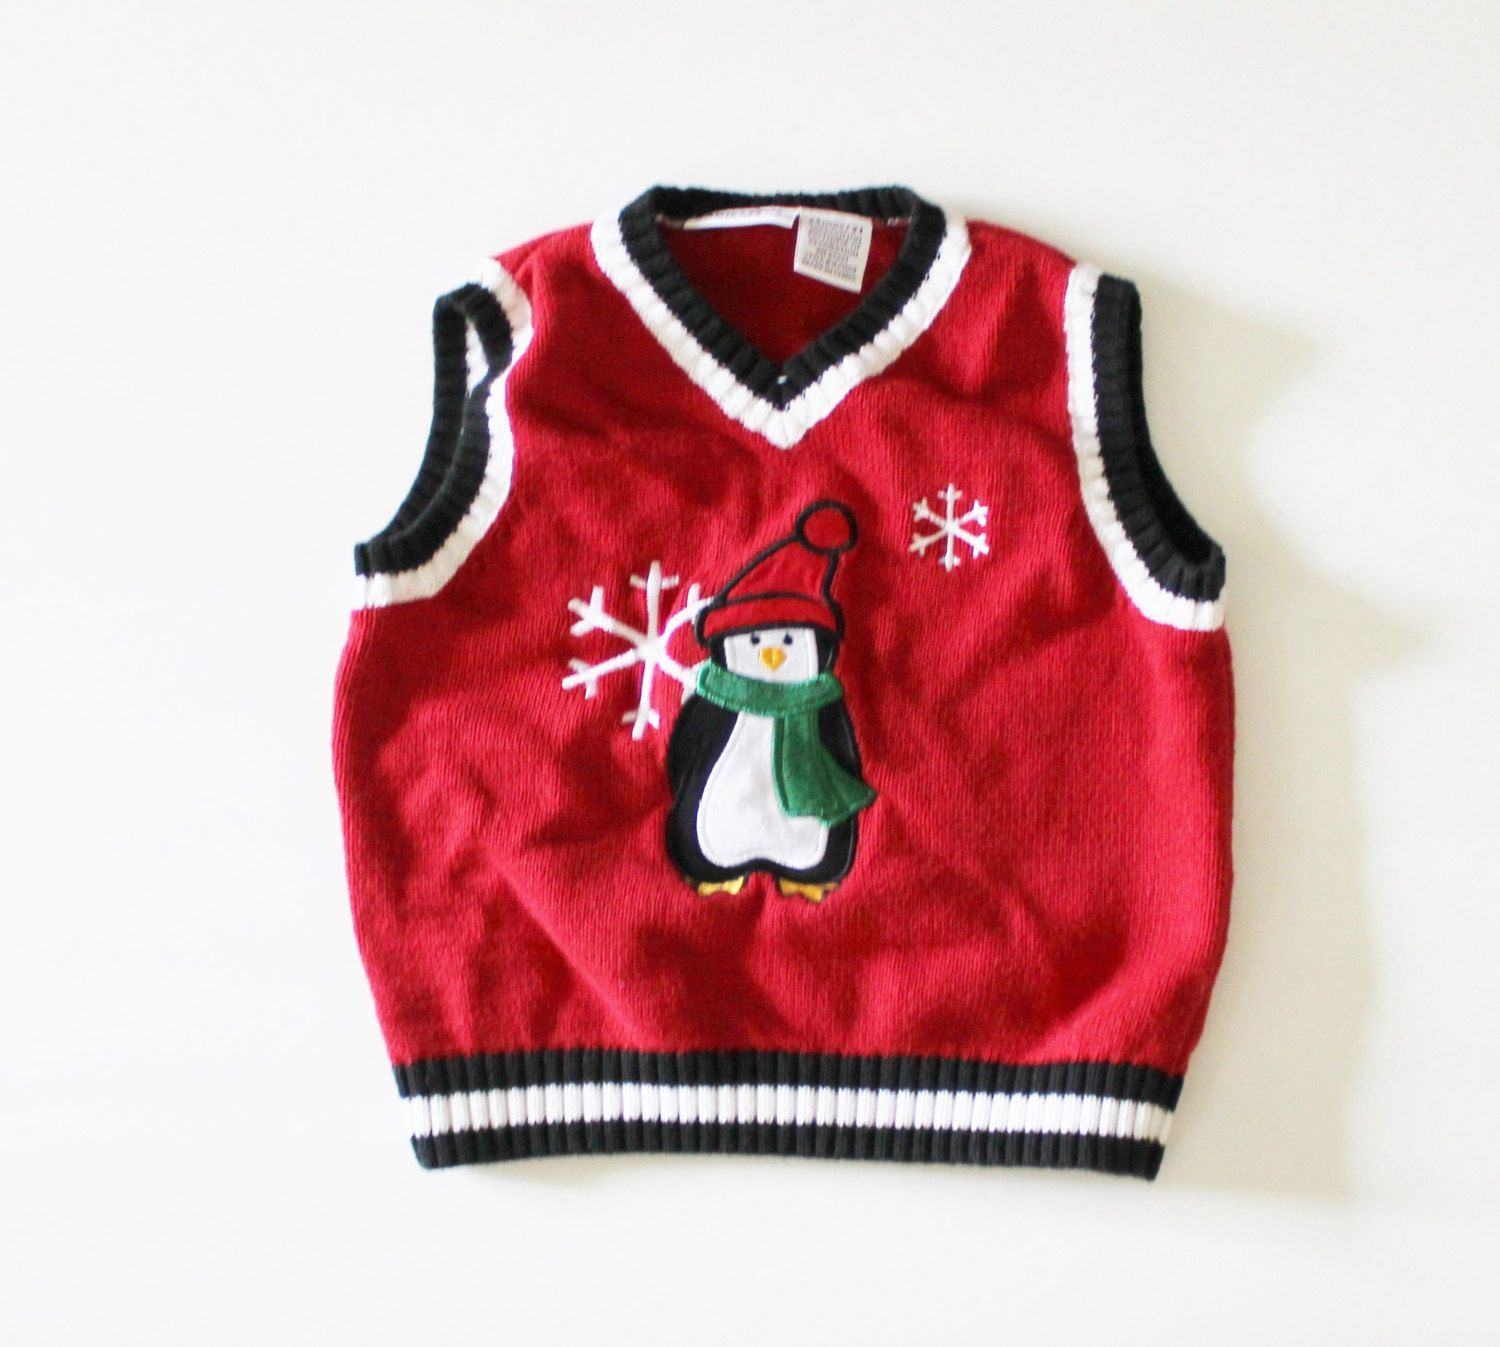 Vintage 90s Pengiun and Snowflakes Red Sweater Vest - Ugly ...